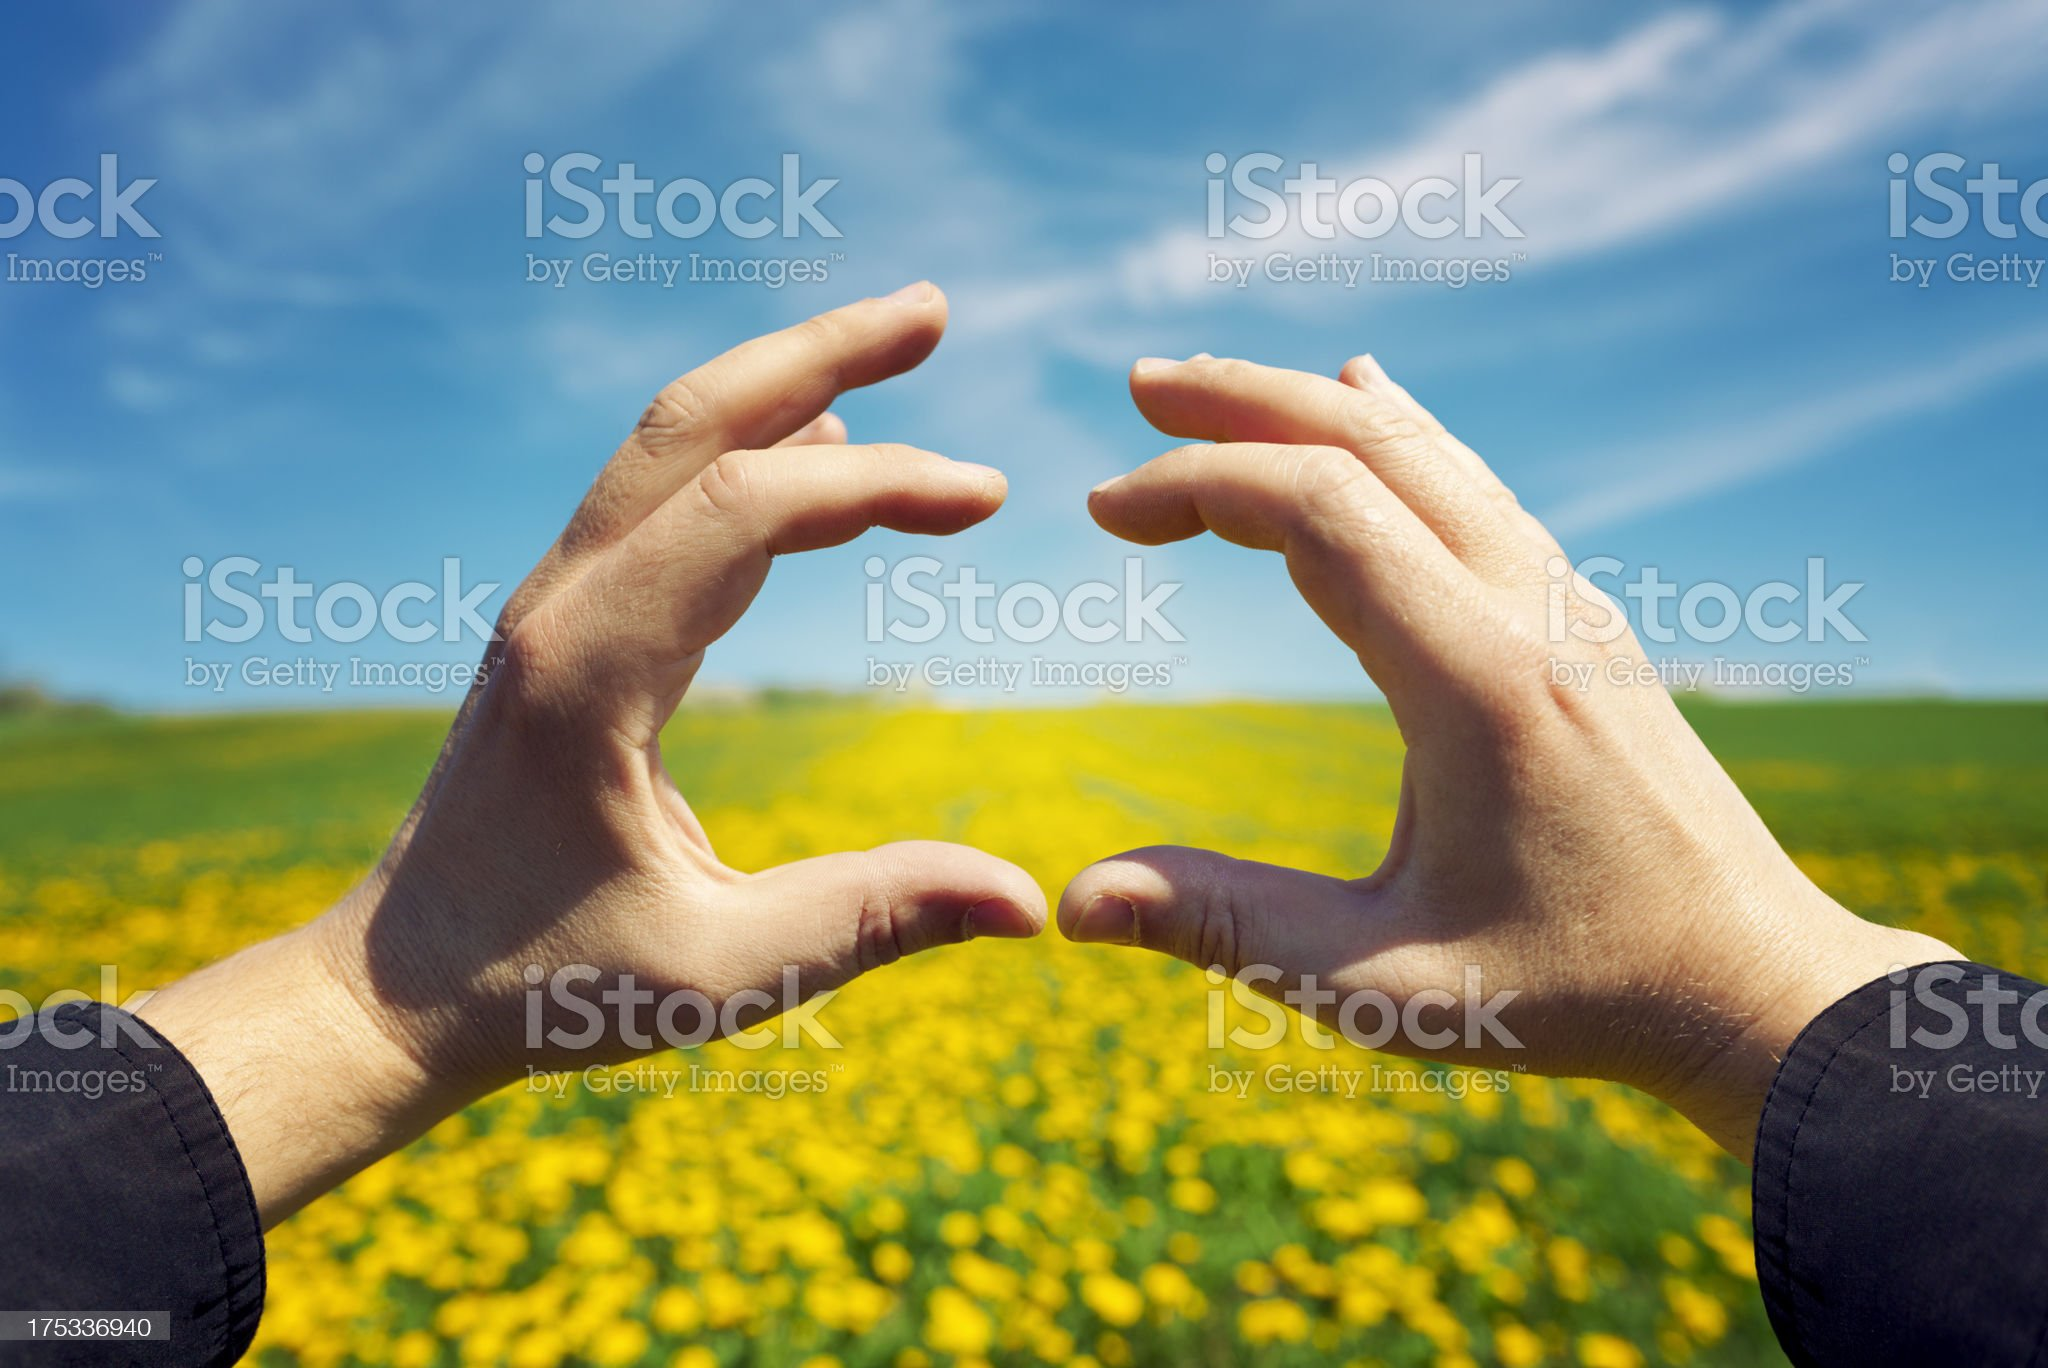 Hands forming a frame over a yellow-flowered field royalty-free stock photo